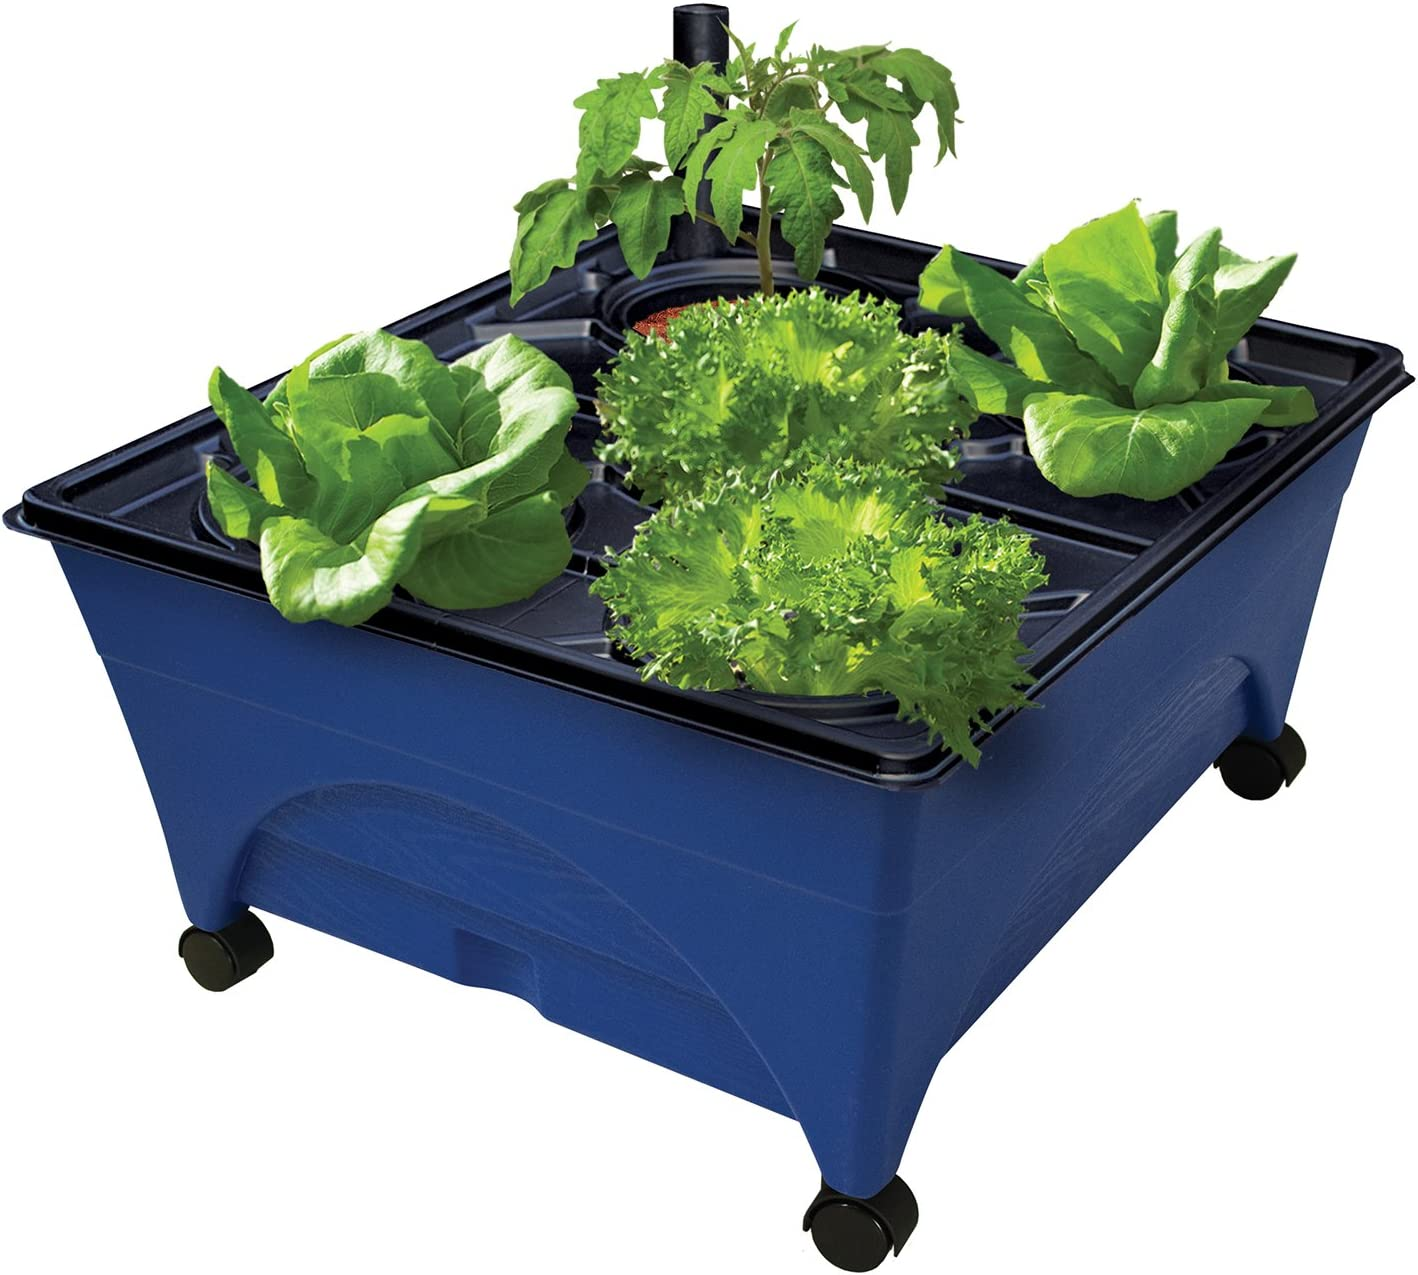 "Emsco Group 5 Hydropickers Compact 5"" x 5"" Footprint – Mobility  Provided by Casters Non-Electric Hydroponics Grow Box, Blue"